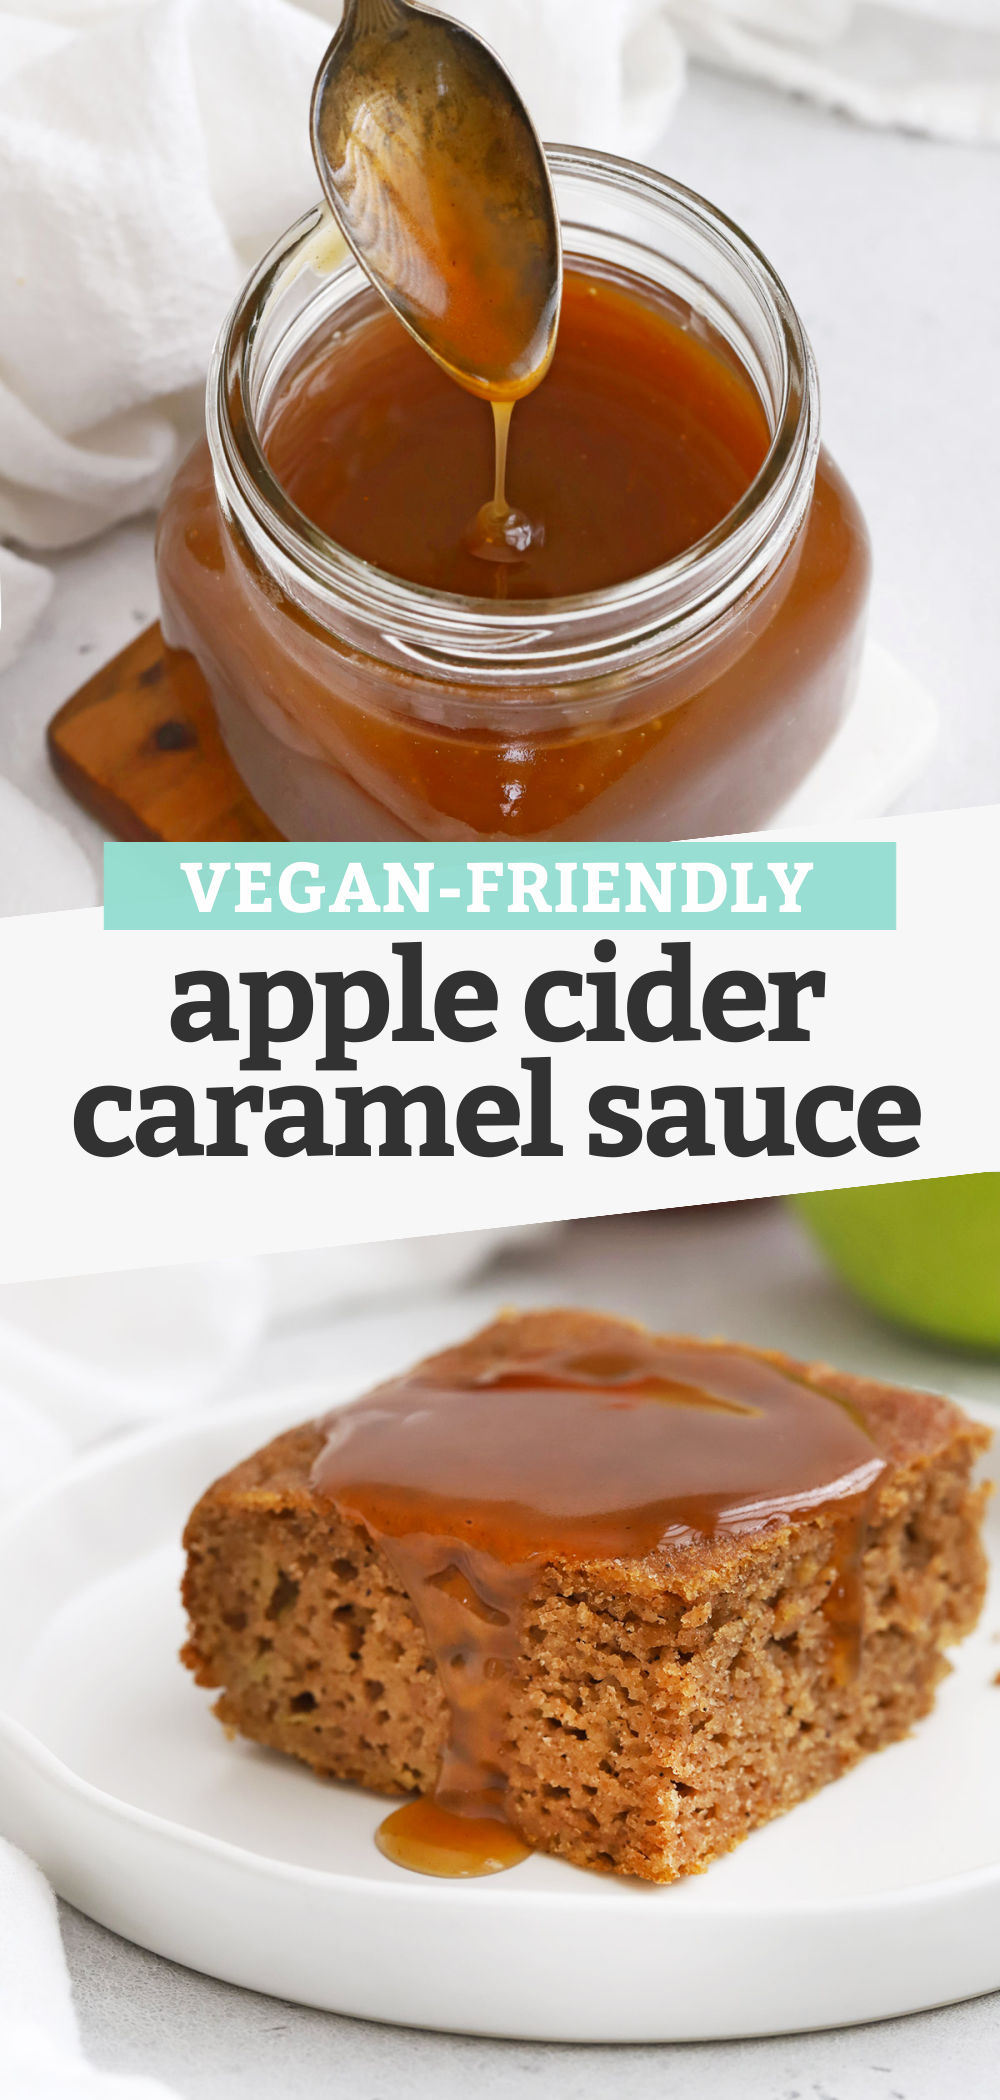 """Collage of images of apple cider caramel sauce with text overlay that reads """"Vegan-Friendly Apple Cider Caramel Sauce"""""""